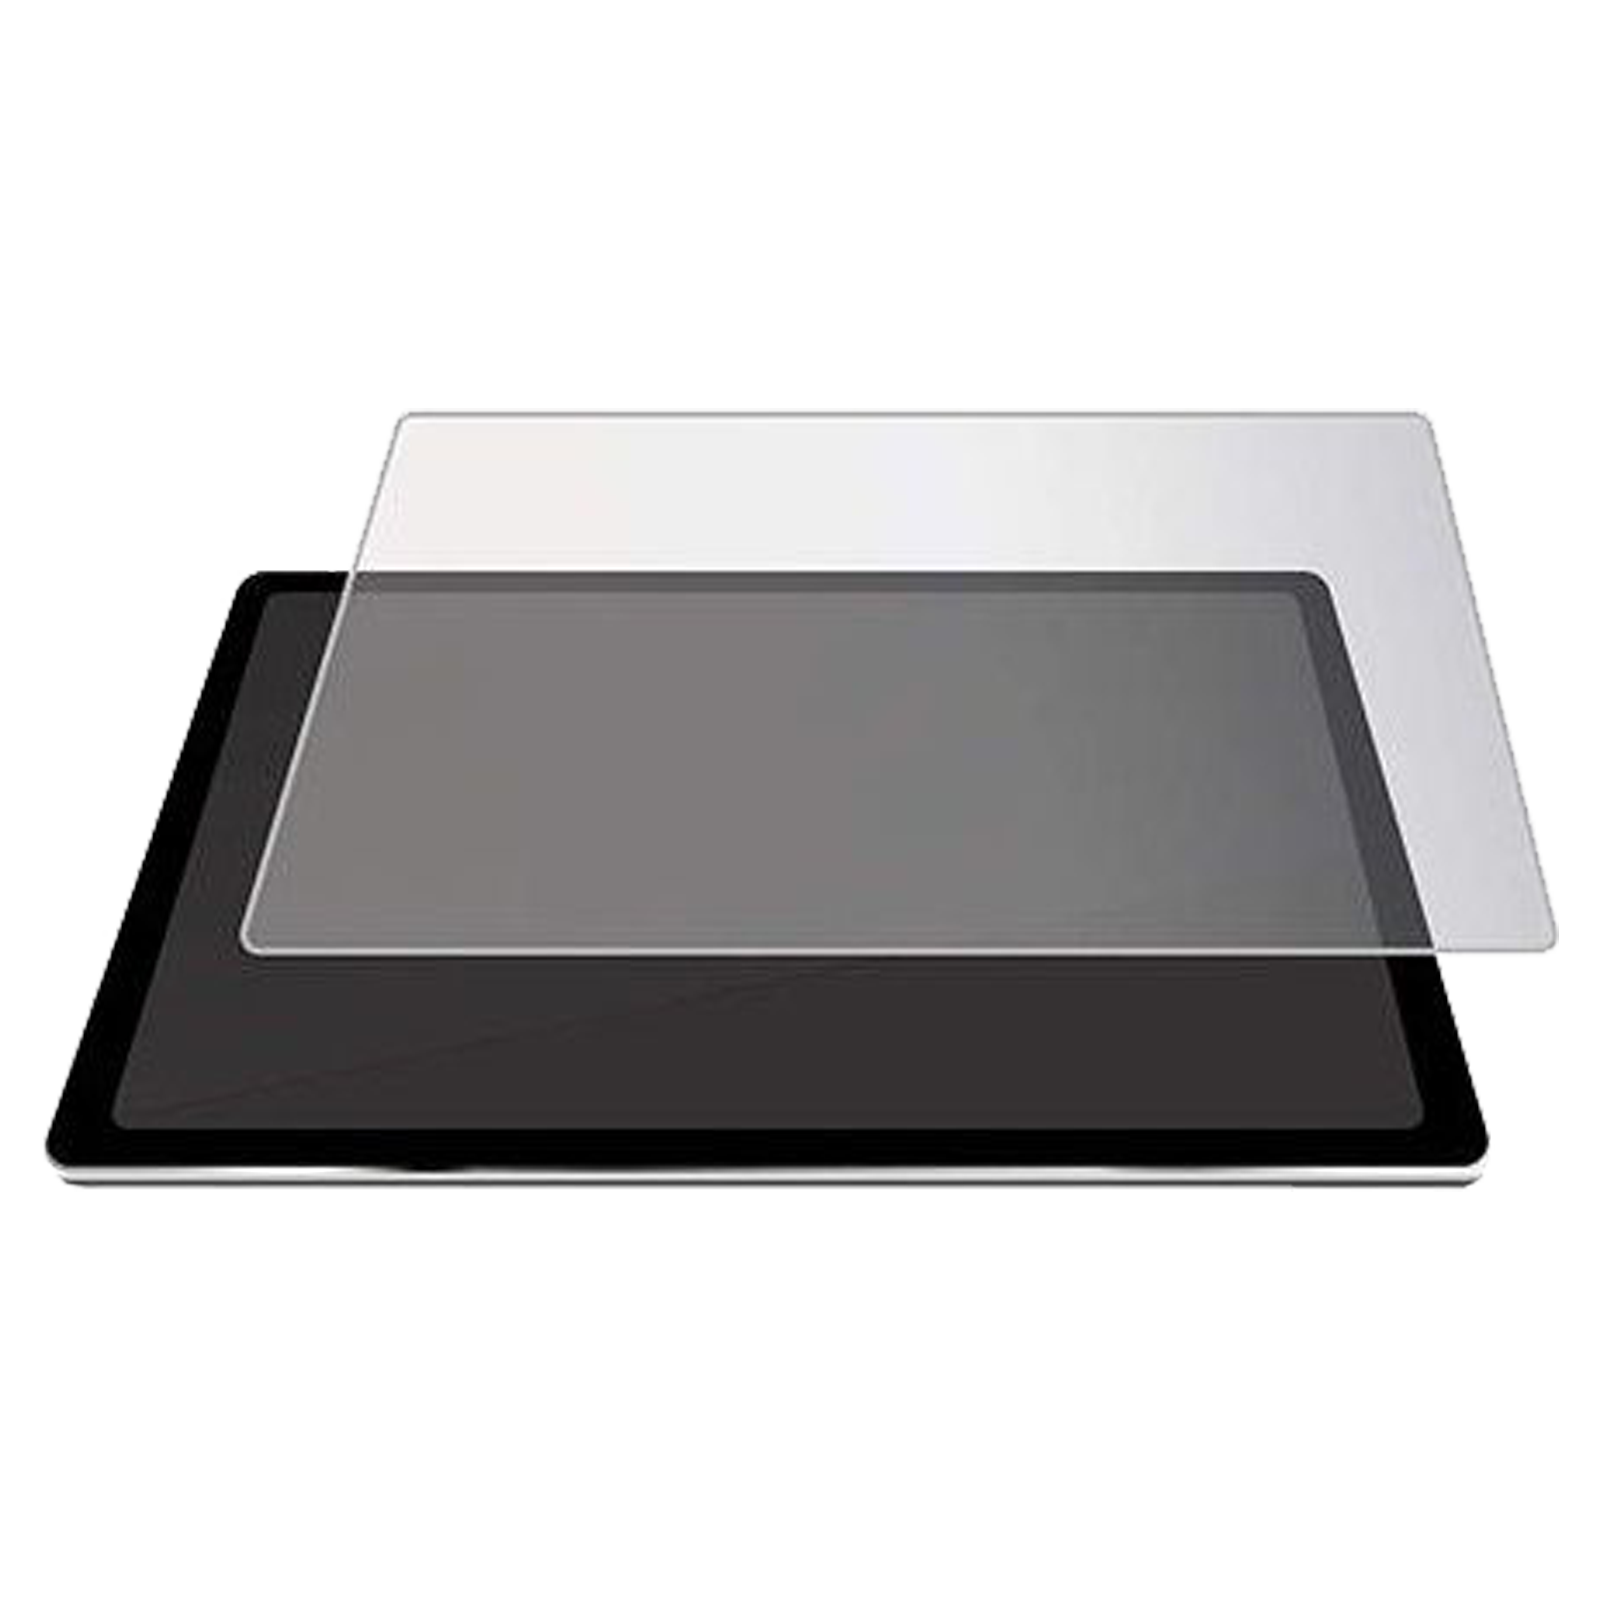 STM Tablet Screen Protector For Apple iPad Air 4 10.9 Inch (Smooth Chamfered Edges, STM-233-282K-01, Clear)_1